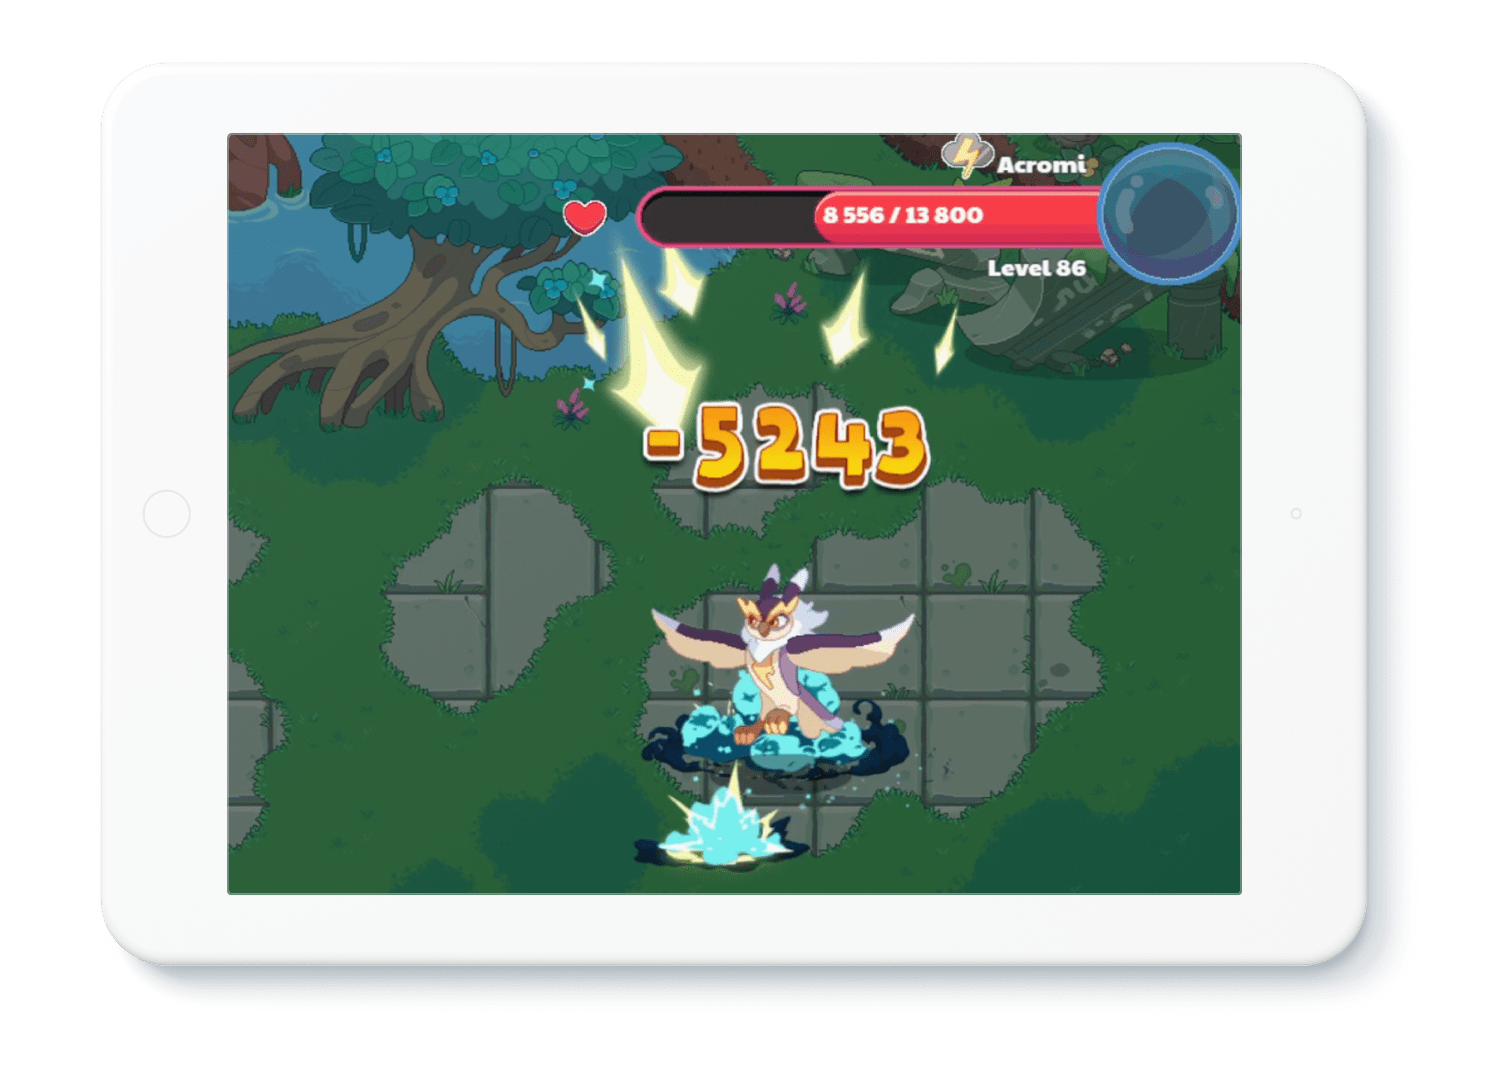 Illustration of tablet device with an in-game Prodigy wizard battle featured on the screen.